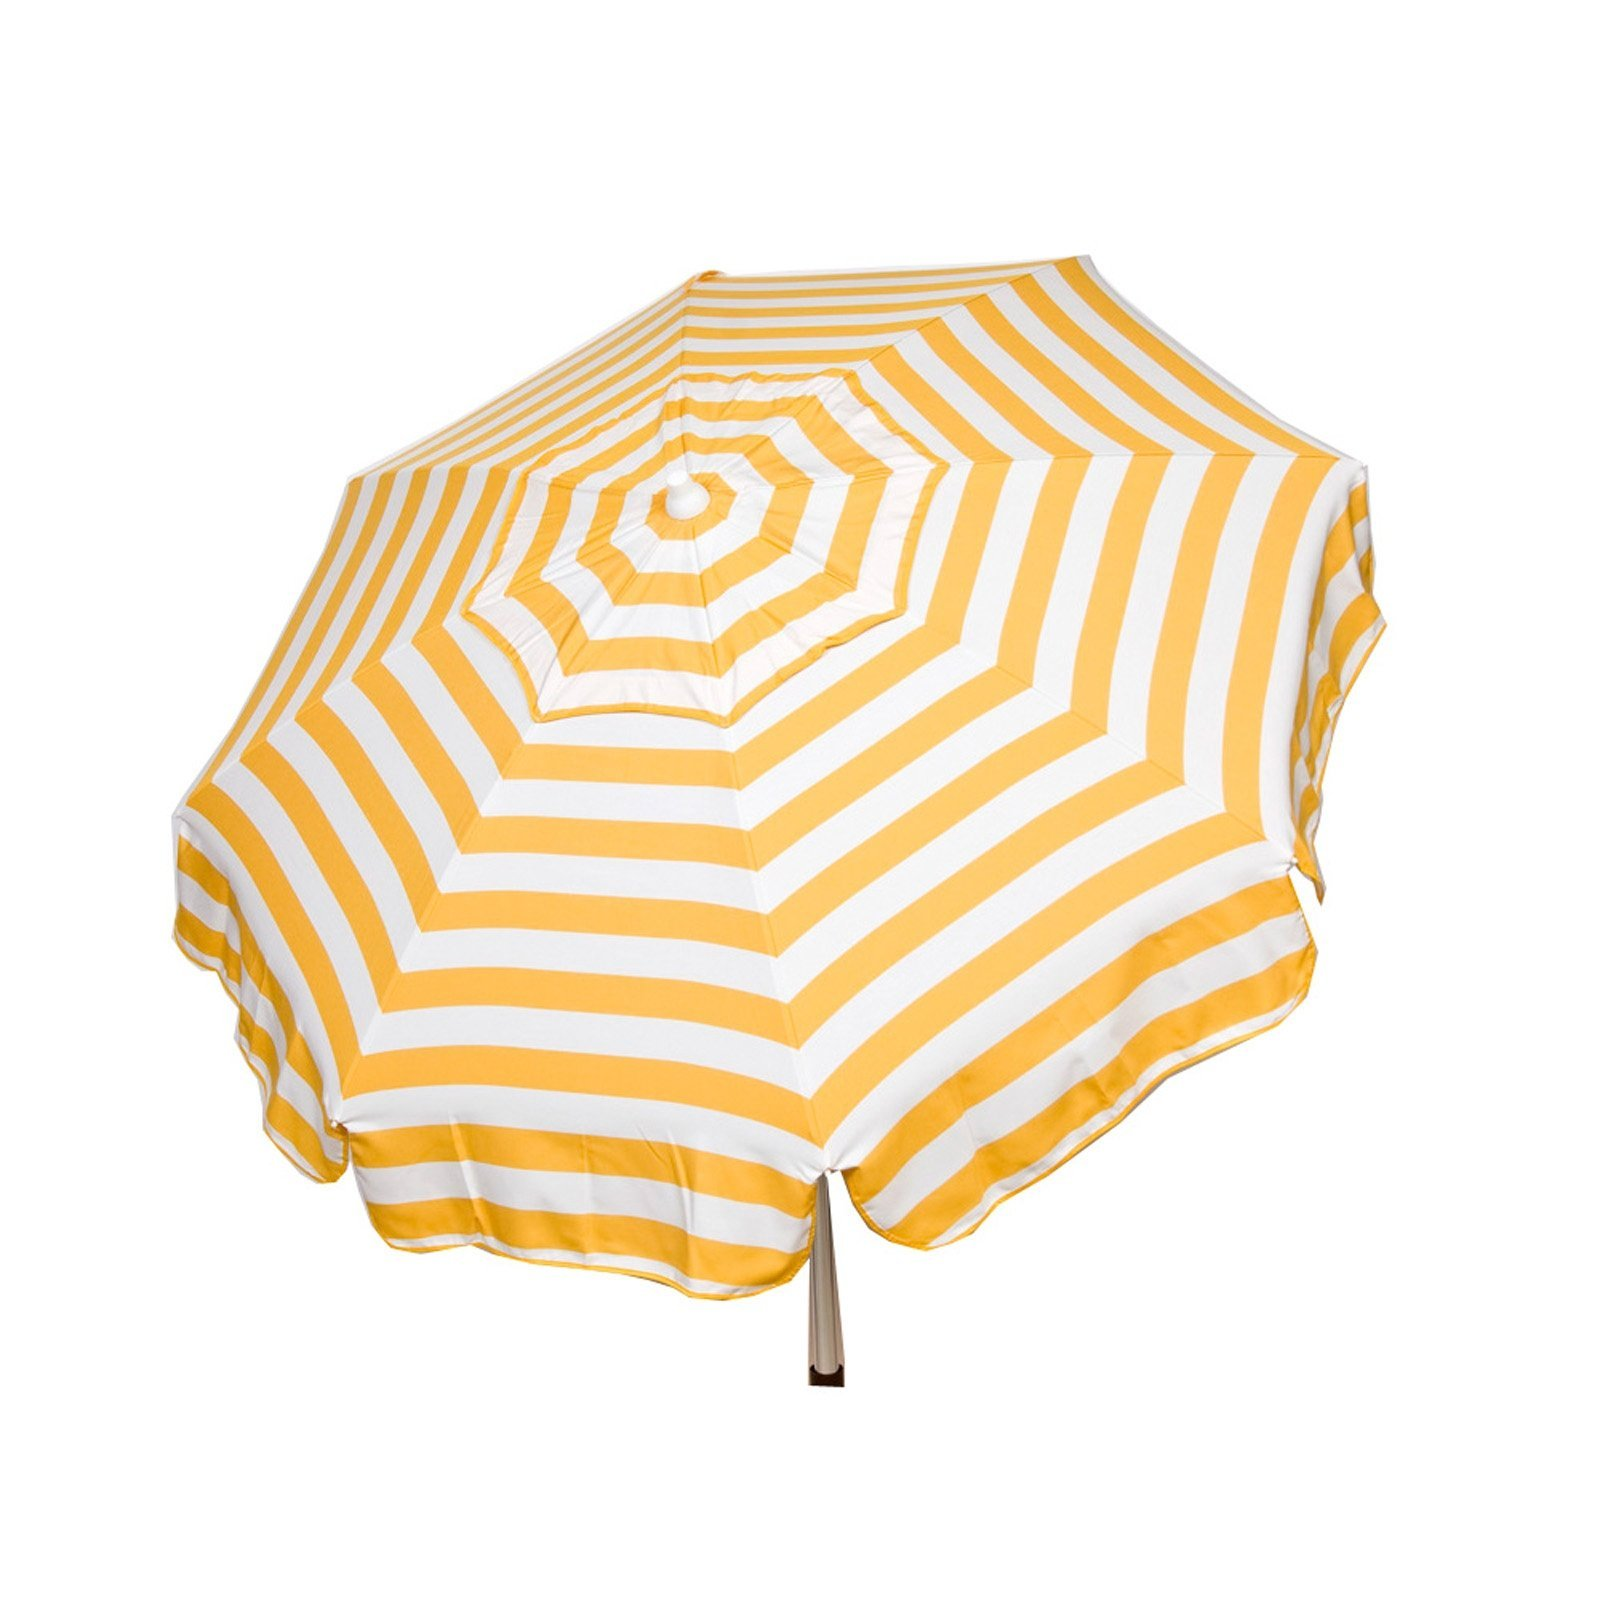 Italian 6 foot Push/Tilt Umbrella Acrylic Stripes Yellow and White - Bar Pole